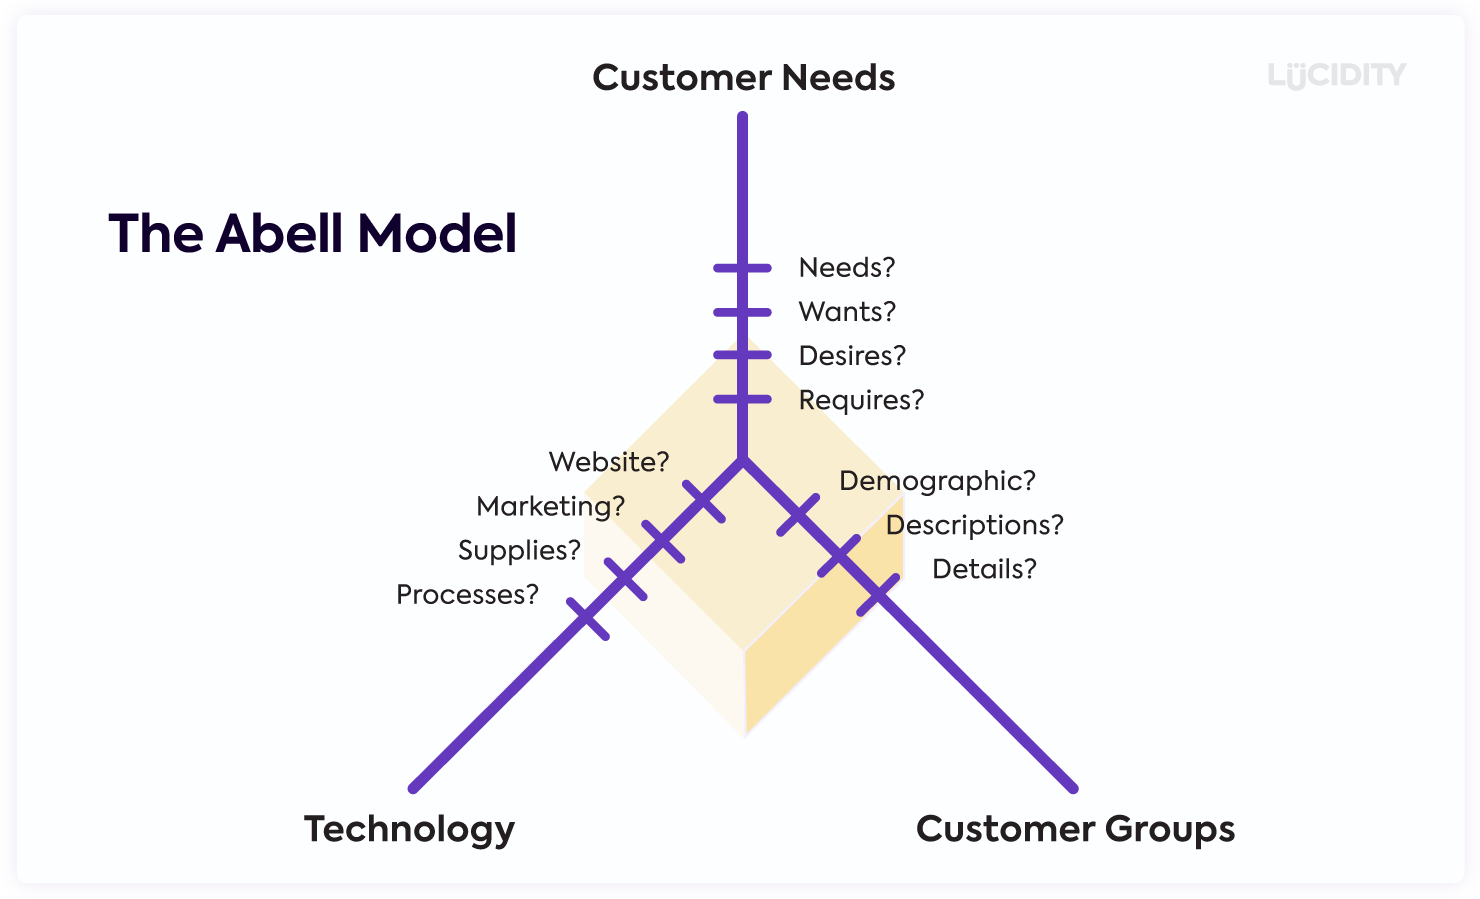 Three way chart showing Customer Needs, Customer Groups and Technologies making up the Abell Model